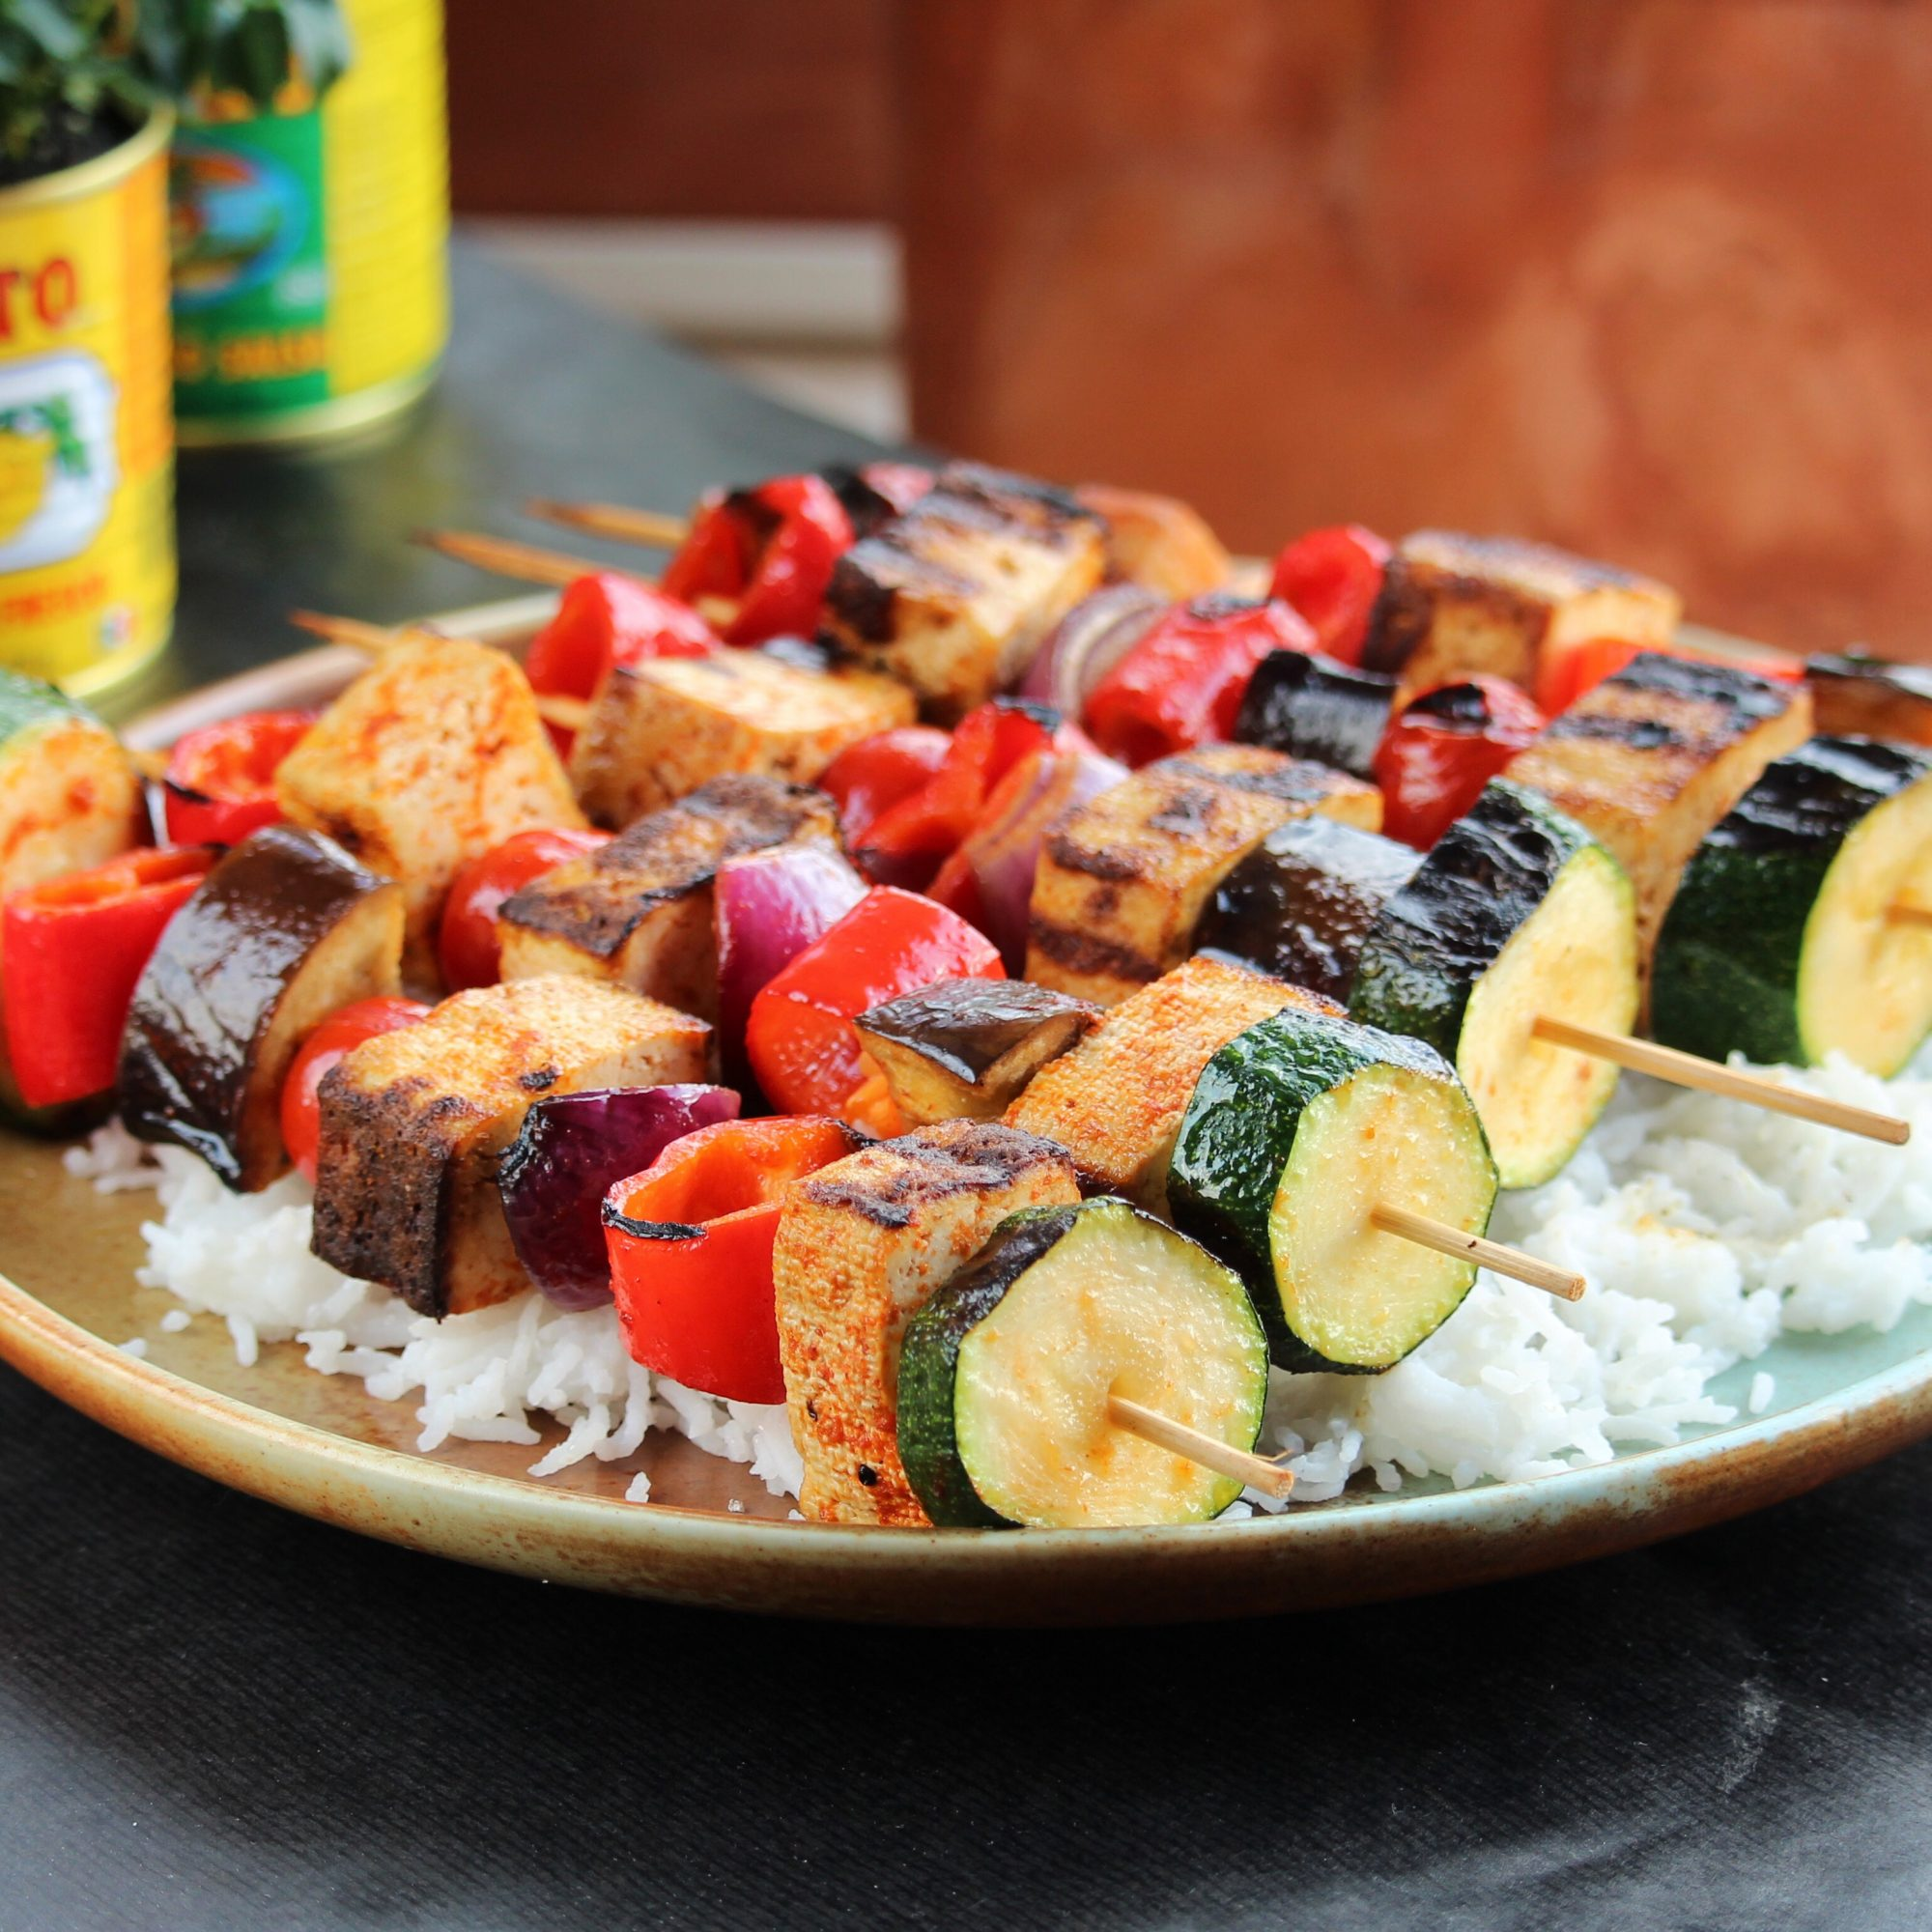 Grilled Tofu Skewers with Sriracha Sauce on a beige plate